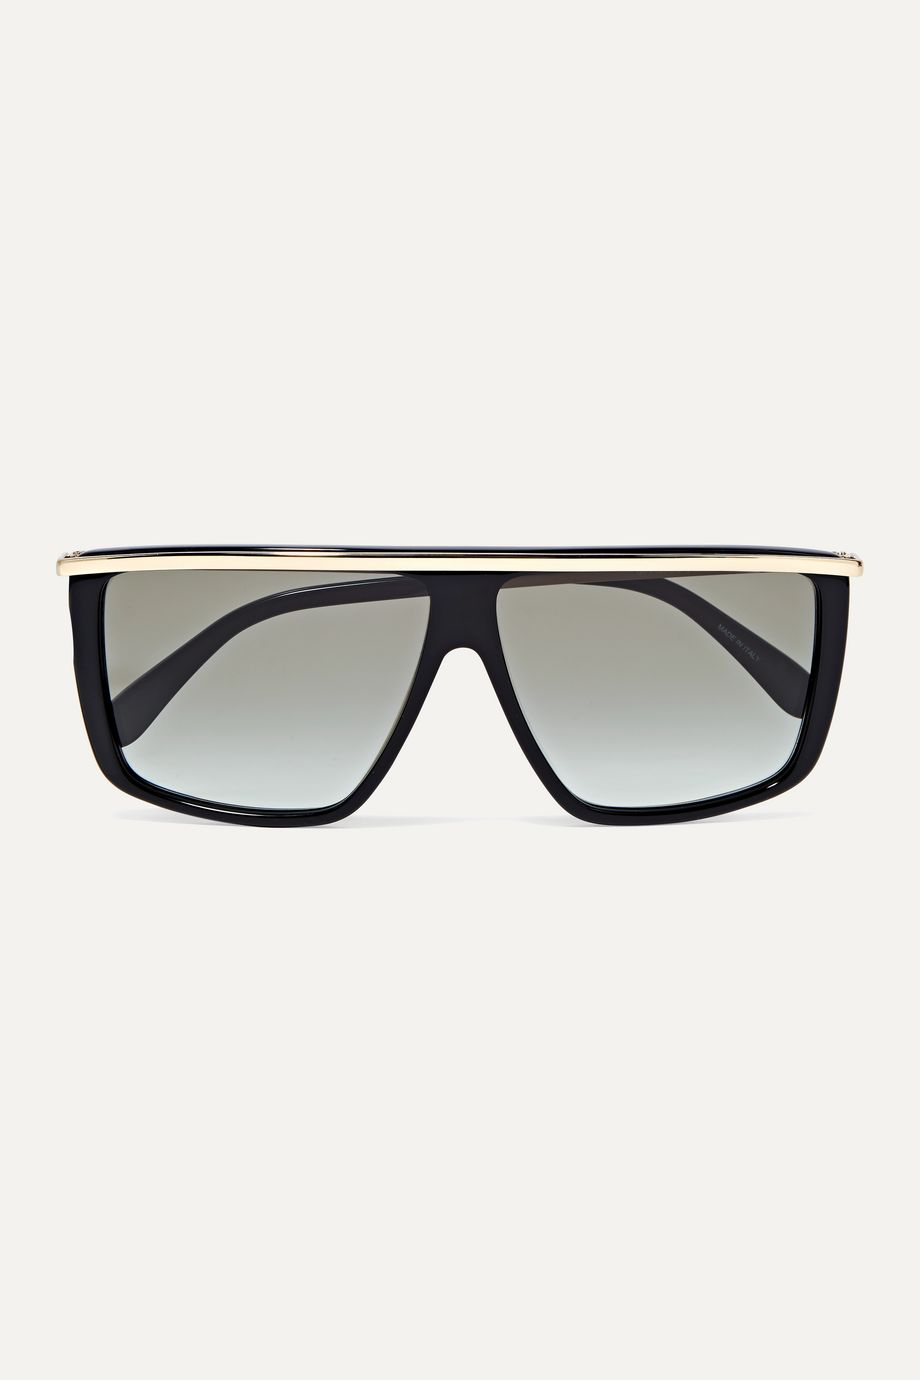 Givenchy D-frame gold-tone and acetate sunglasses